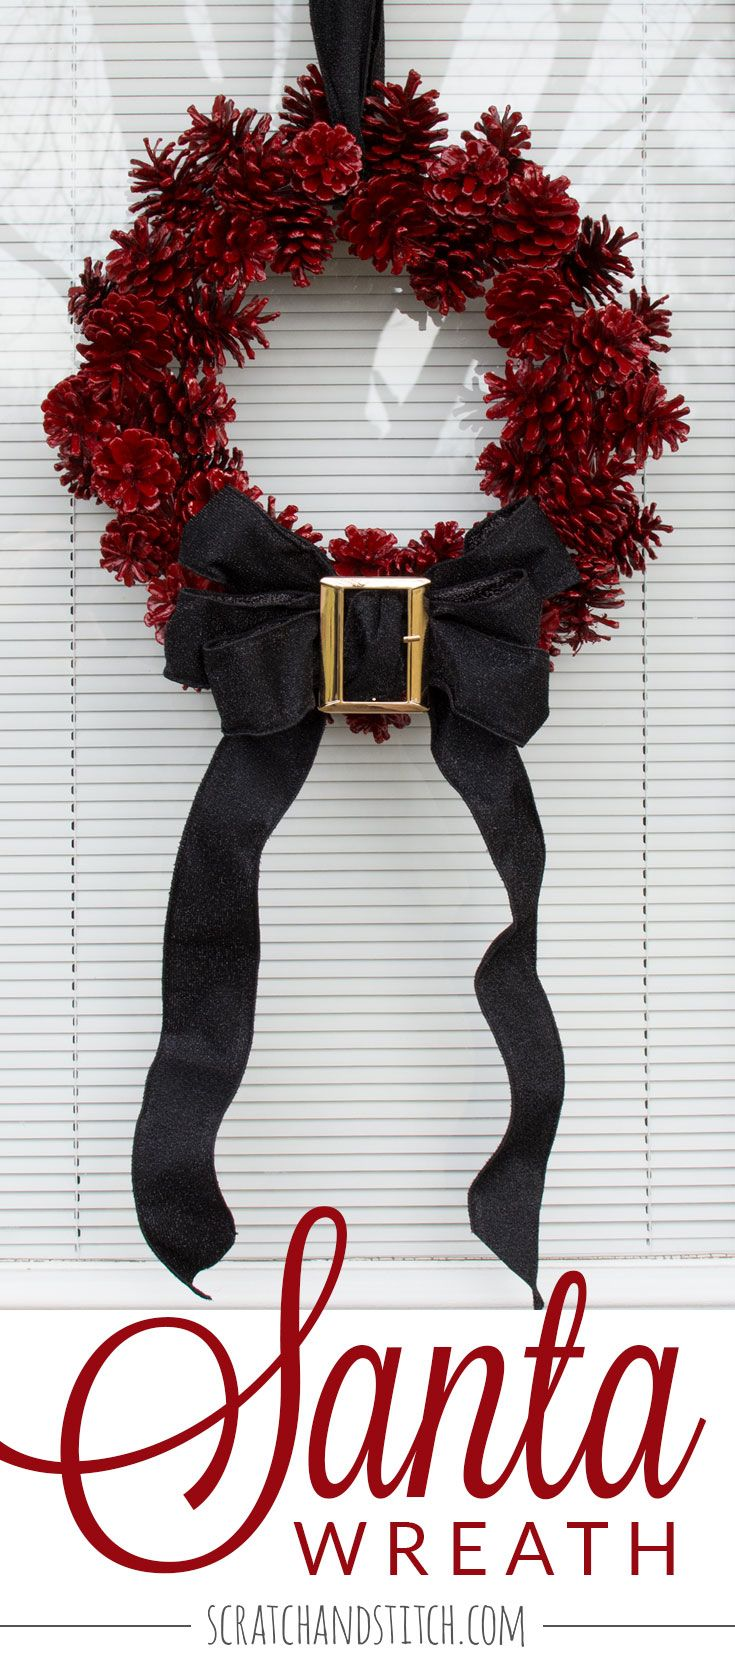 Welcome holiday visitors with this santa wreath made with pine cones, red spray paint, black ribbon, and a belt buckle. By scratchandstitch.com